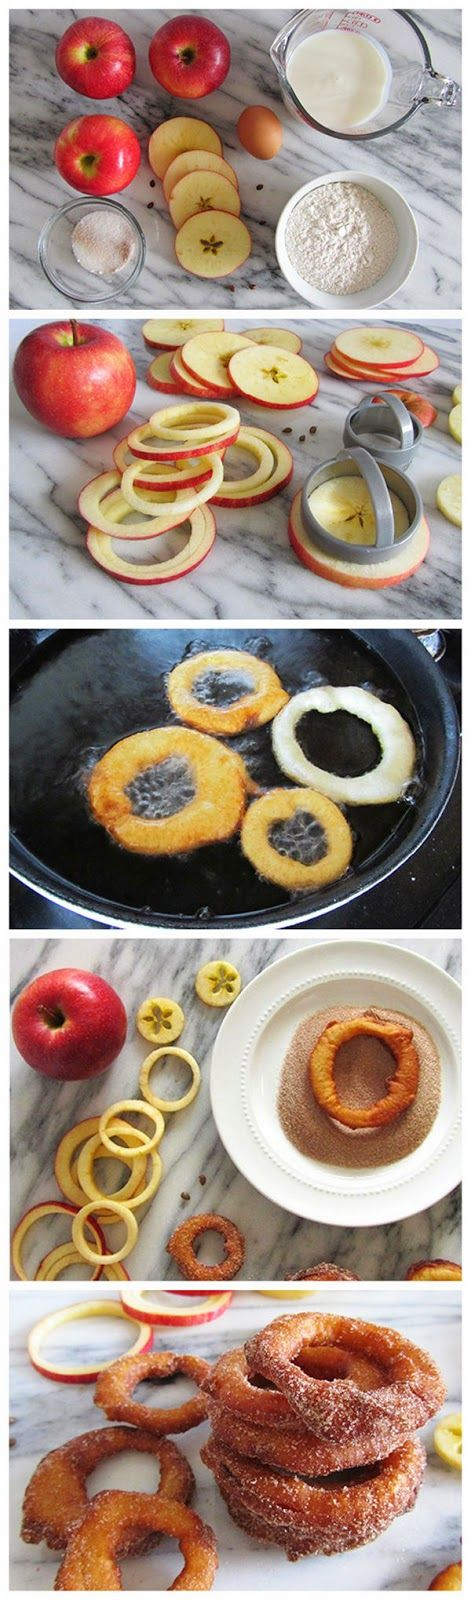 Cinnamon Apple Rings //